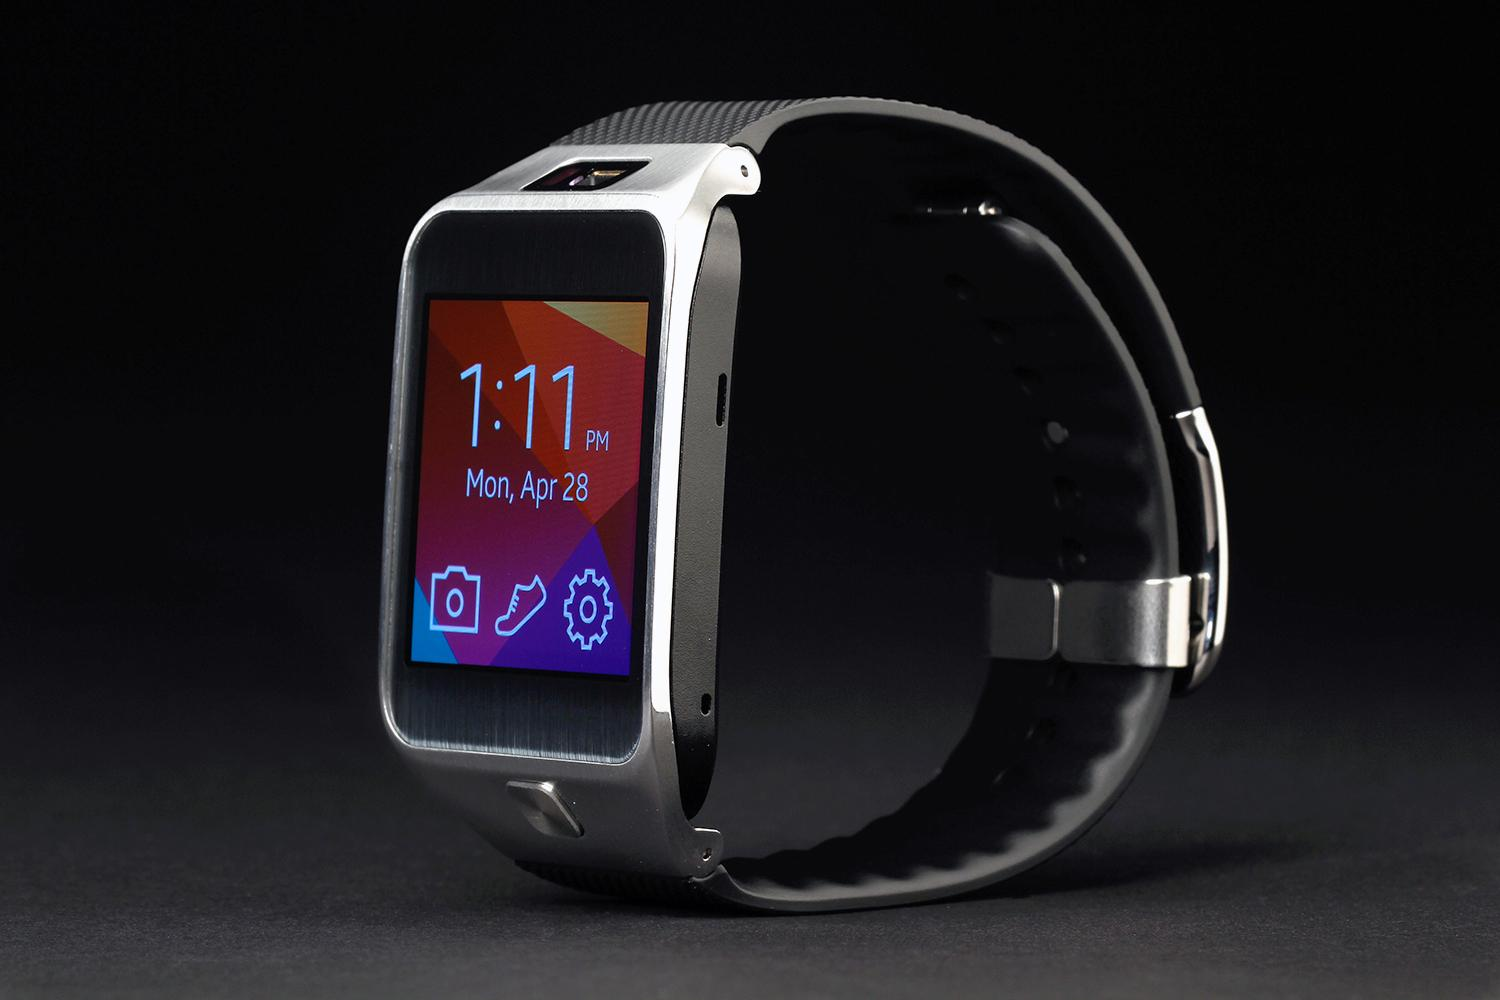 Samsung Gear Fit Is Beautiful Inside And Out Review: Apple, Google, Samsung May Combat Diabetes With Wearables